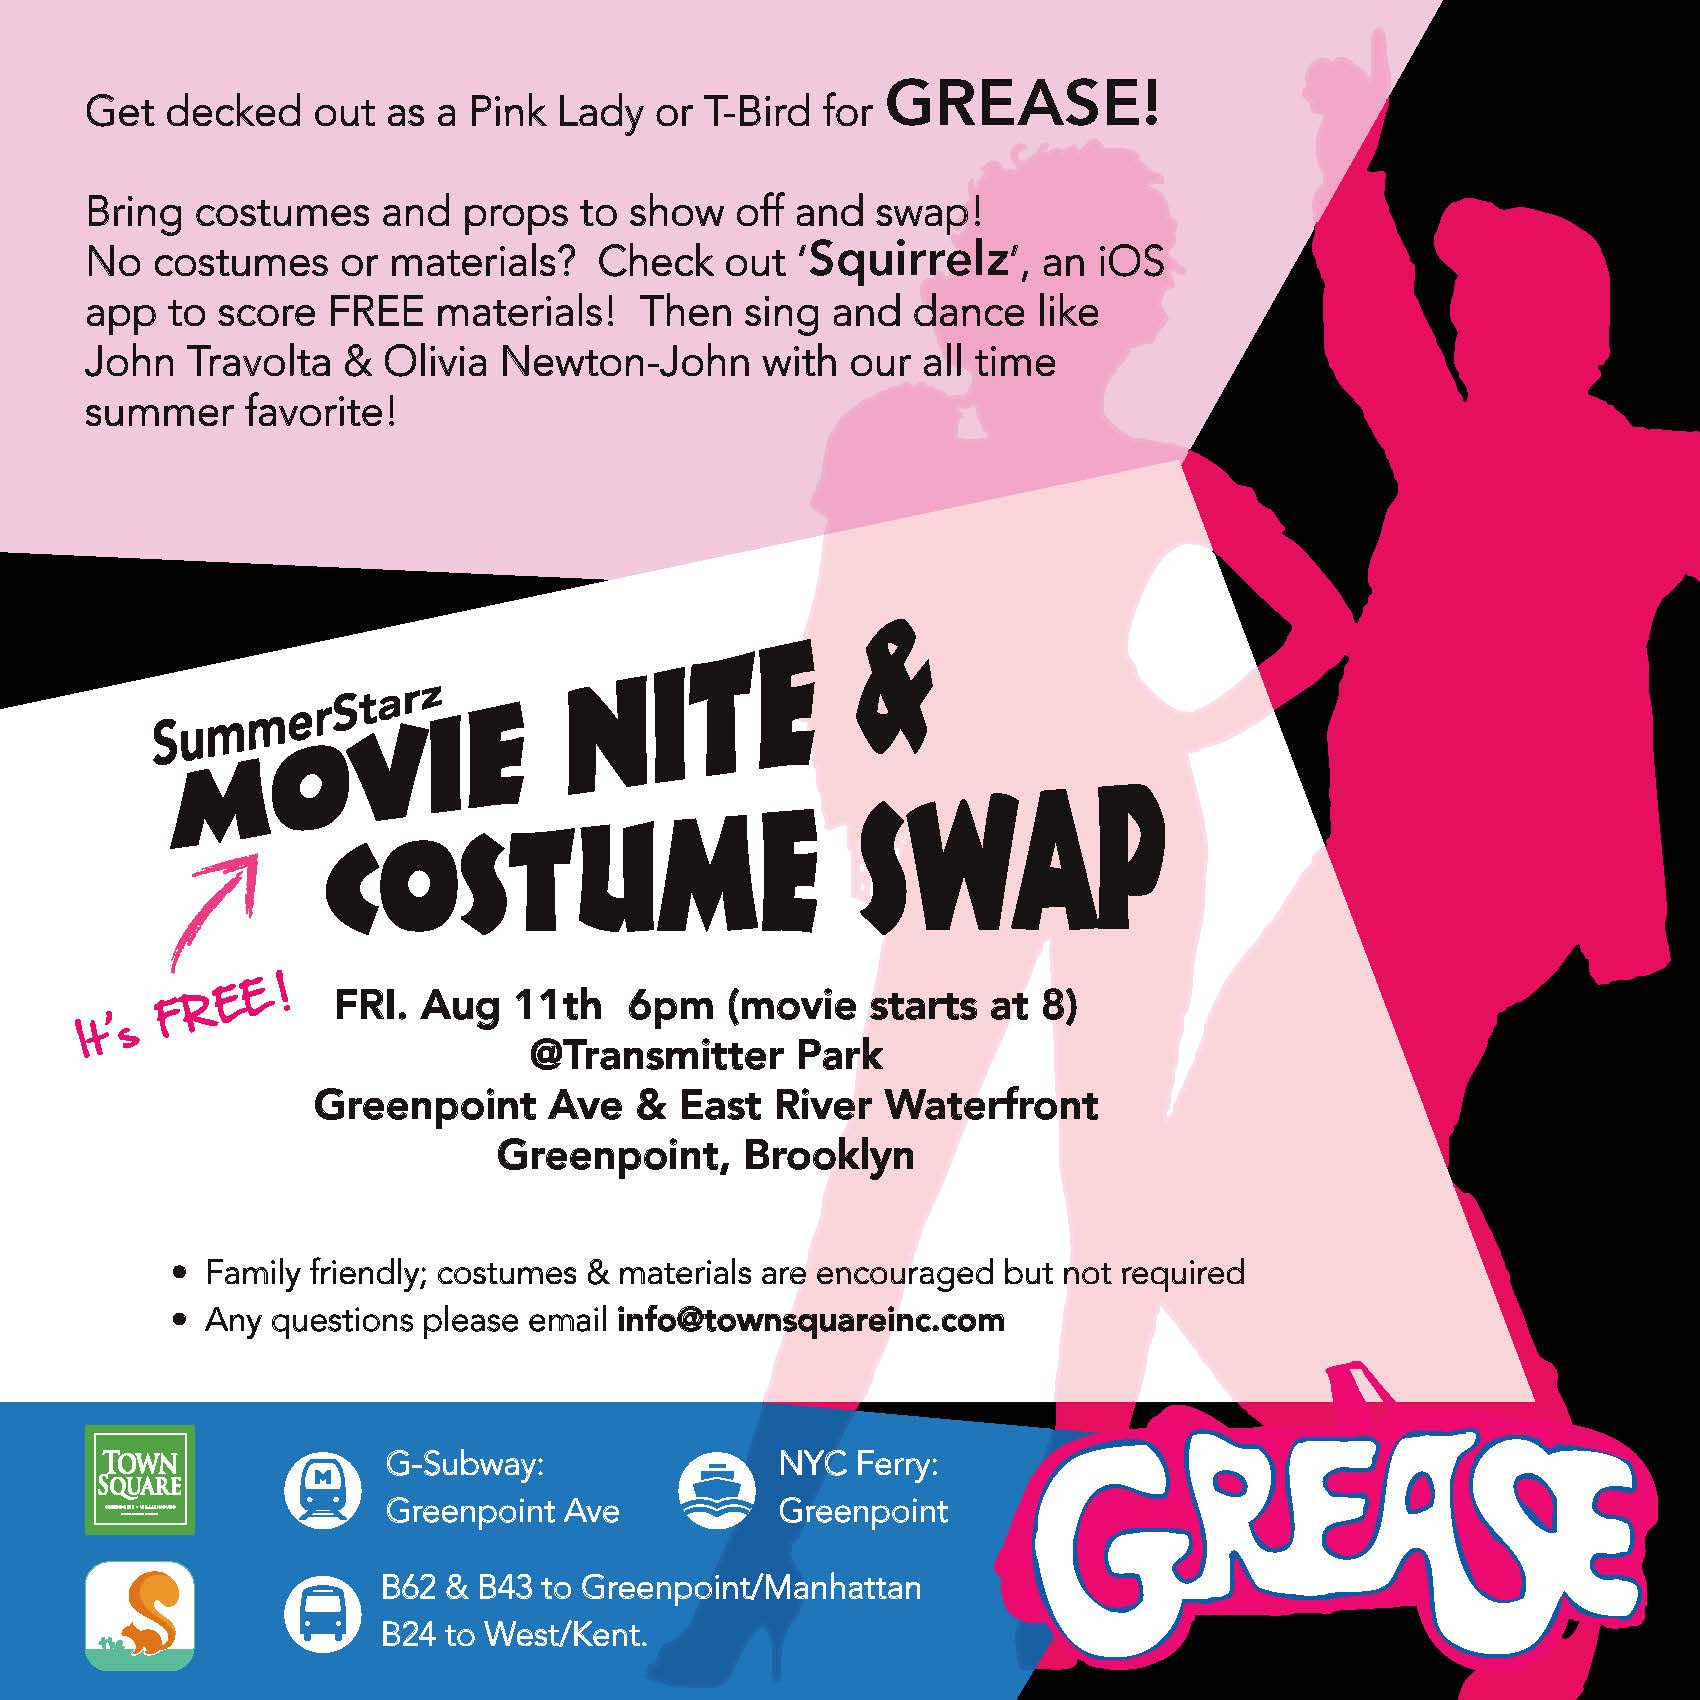 17e8aa990eb3 We've partnered up with Bunny Yan and The Squirrelz to do a Cosplay Swap at  SummerStarz's Grease movie night. Bring costumes and props to show off and  swap!